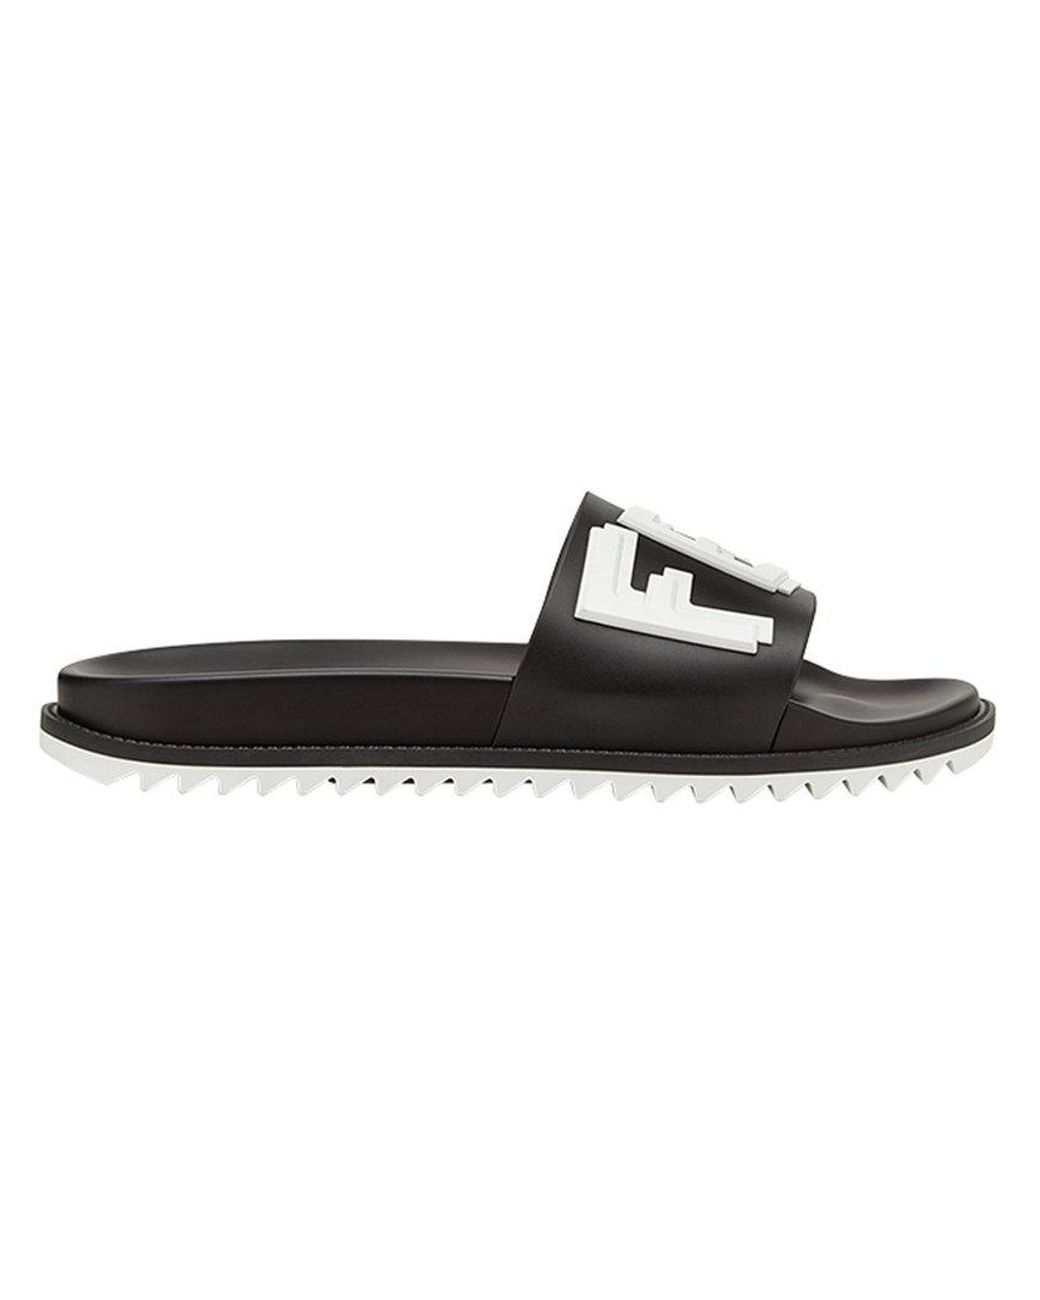 09eaf03eb Fendi Logo Slide Sandals in Black for Men - Save 42% - Lyst